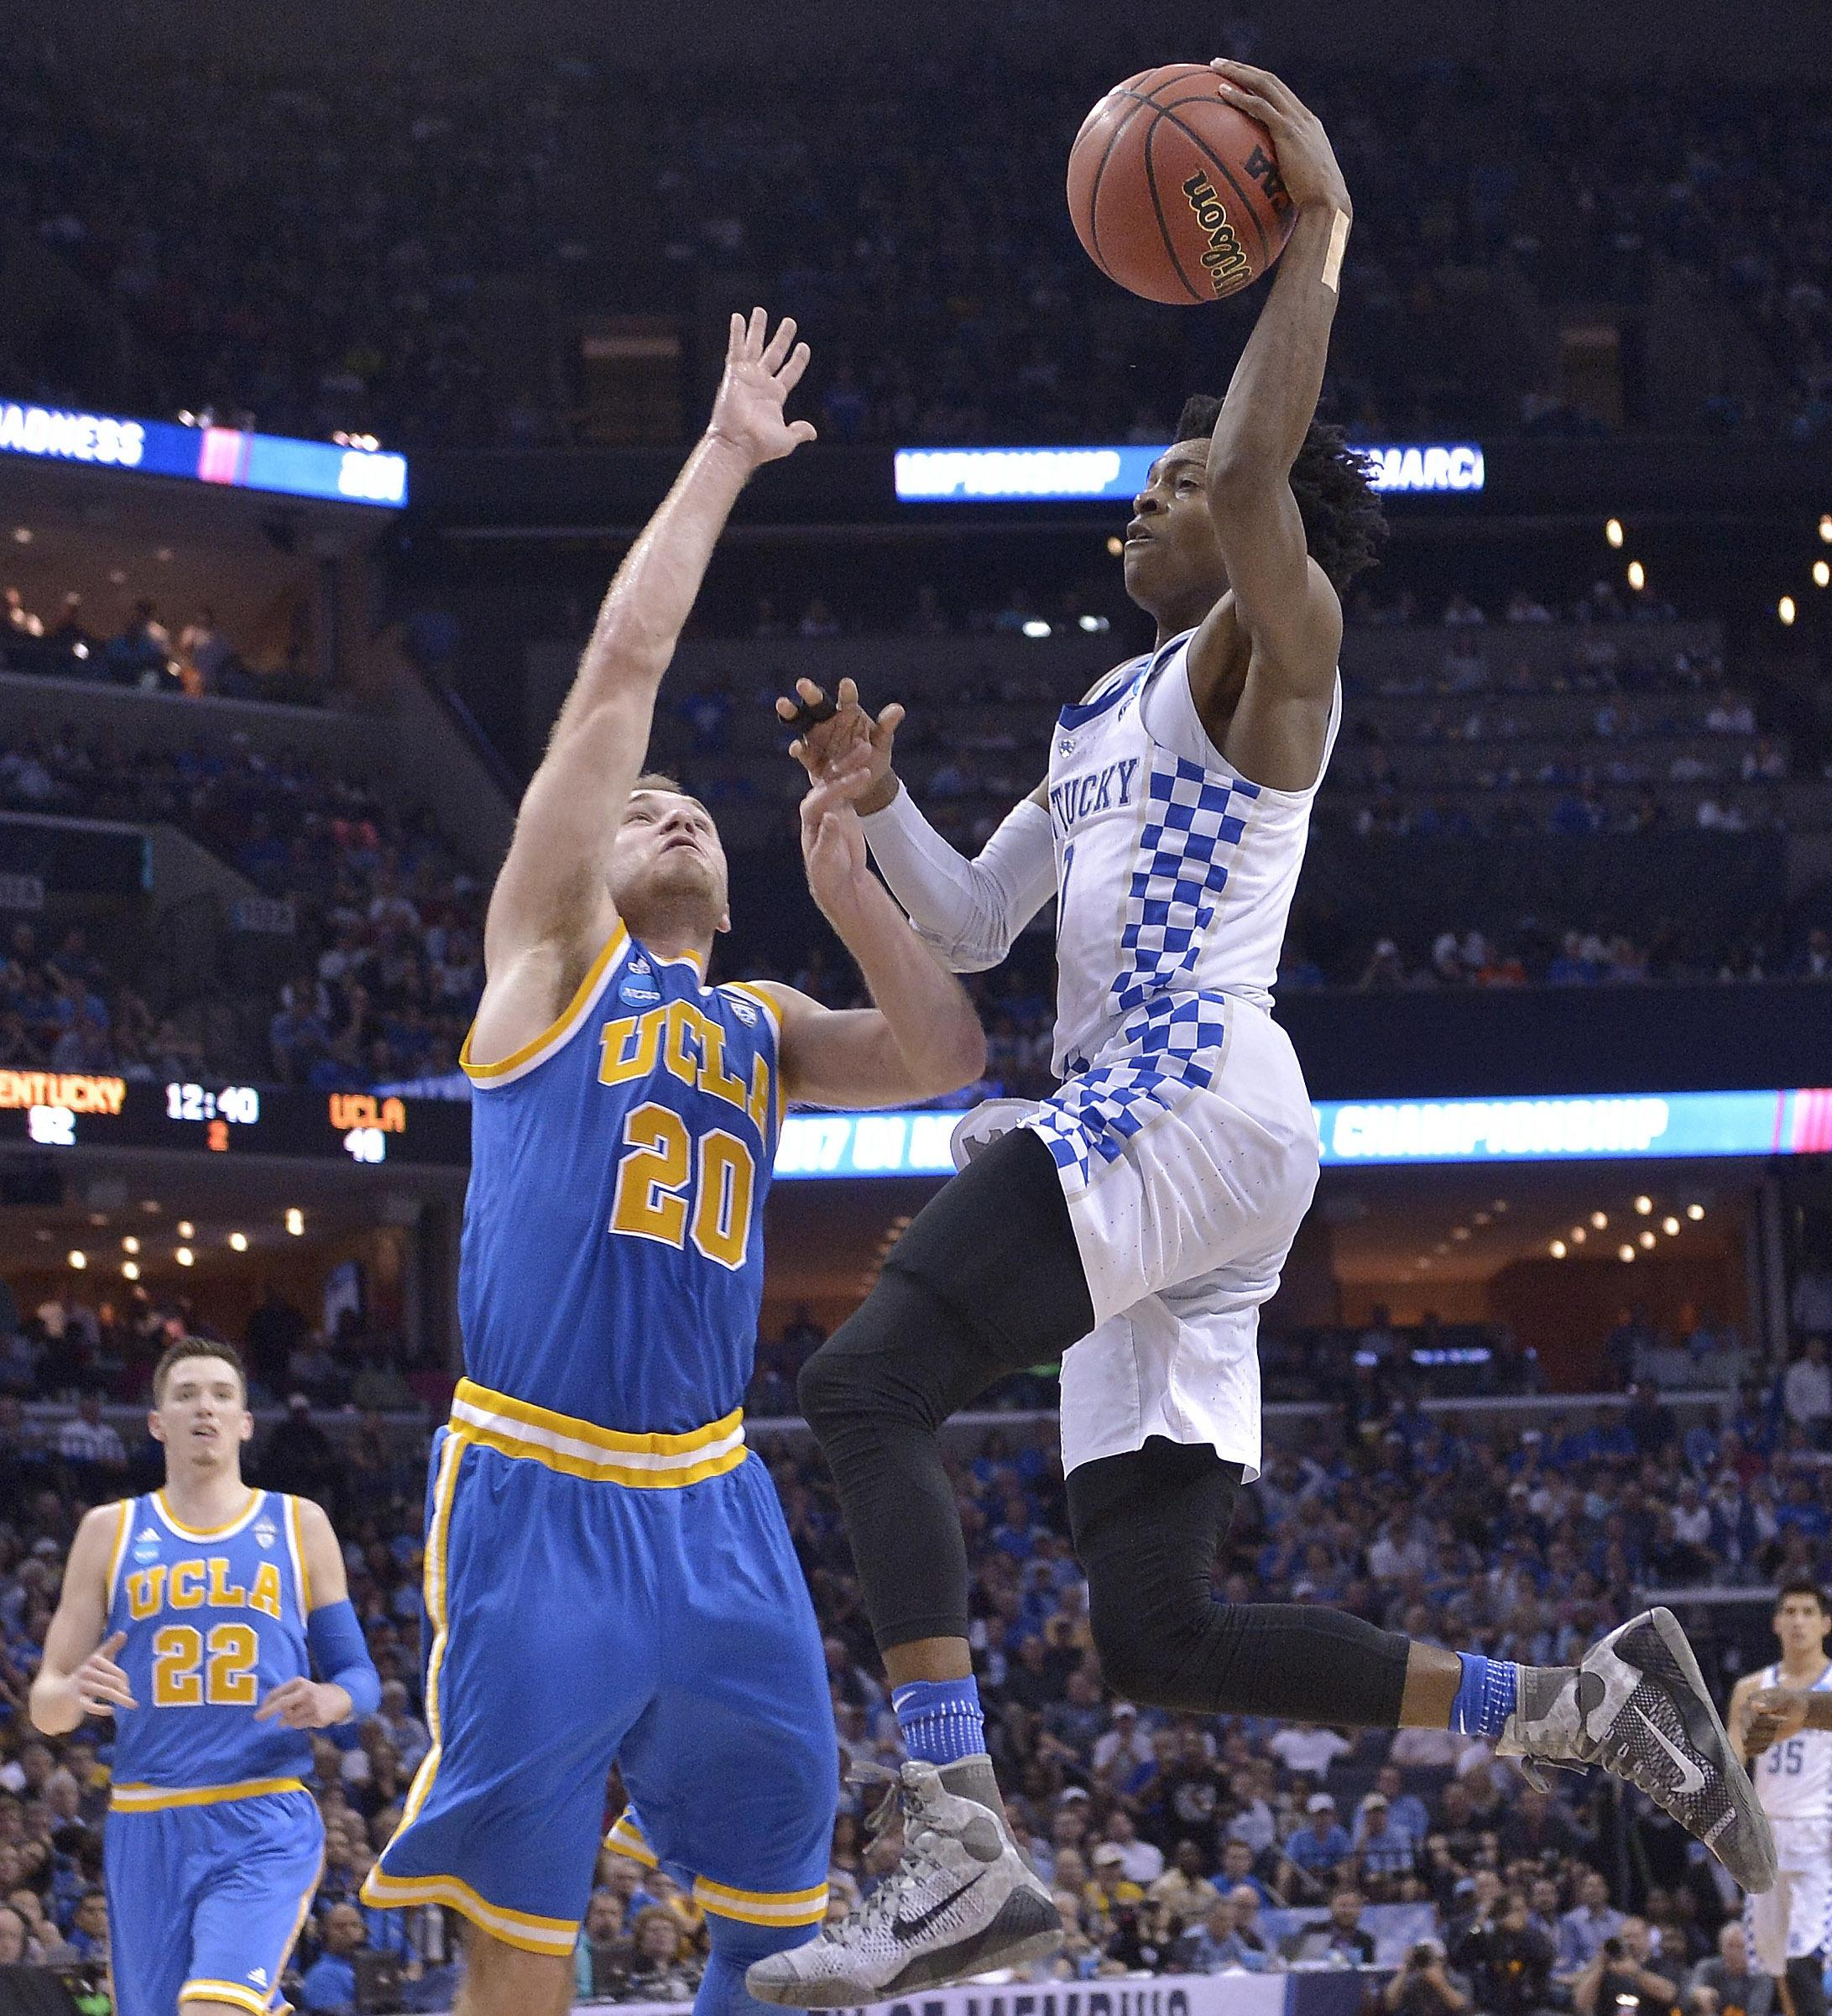 Ncaa_ucla_kentucky_basketball_18413